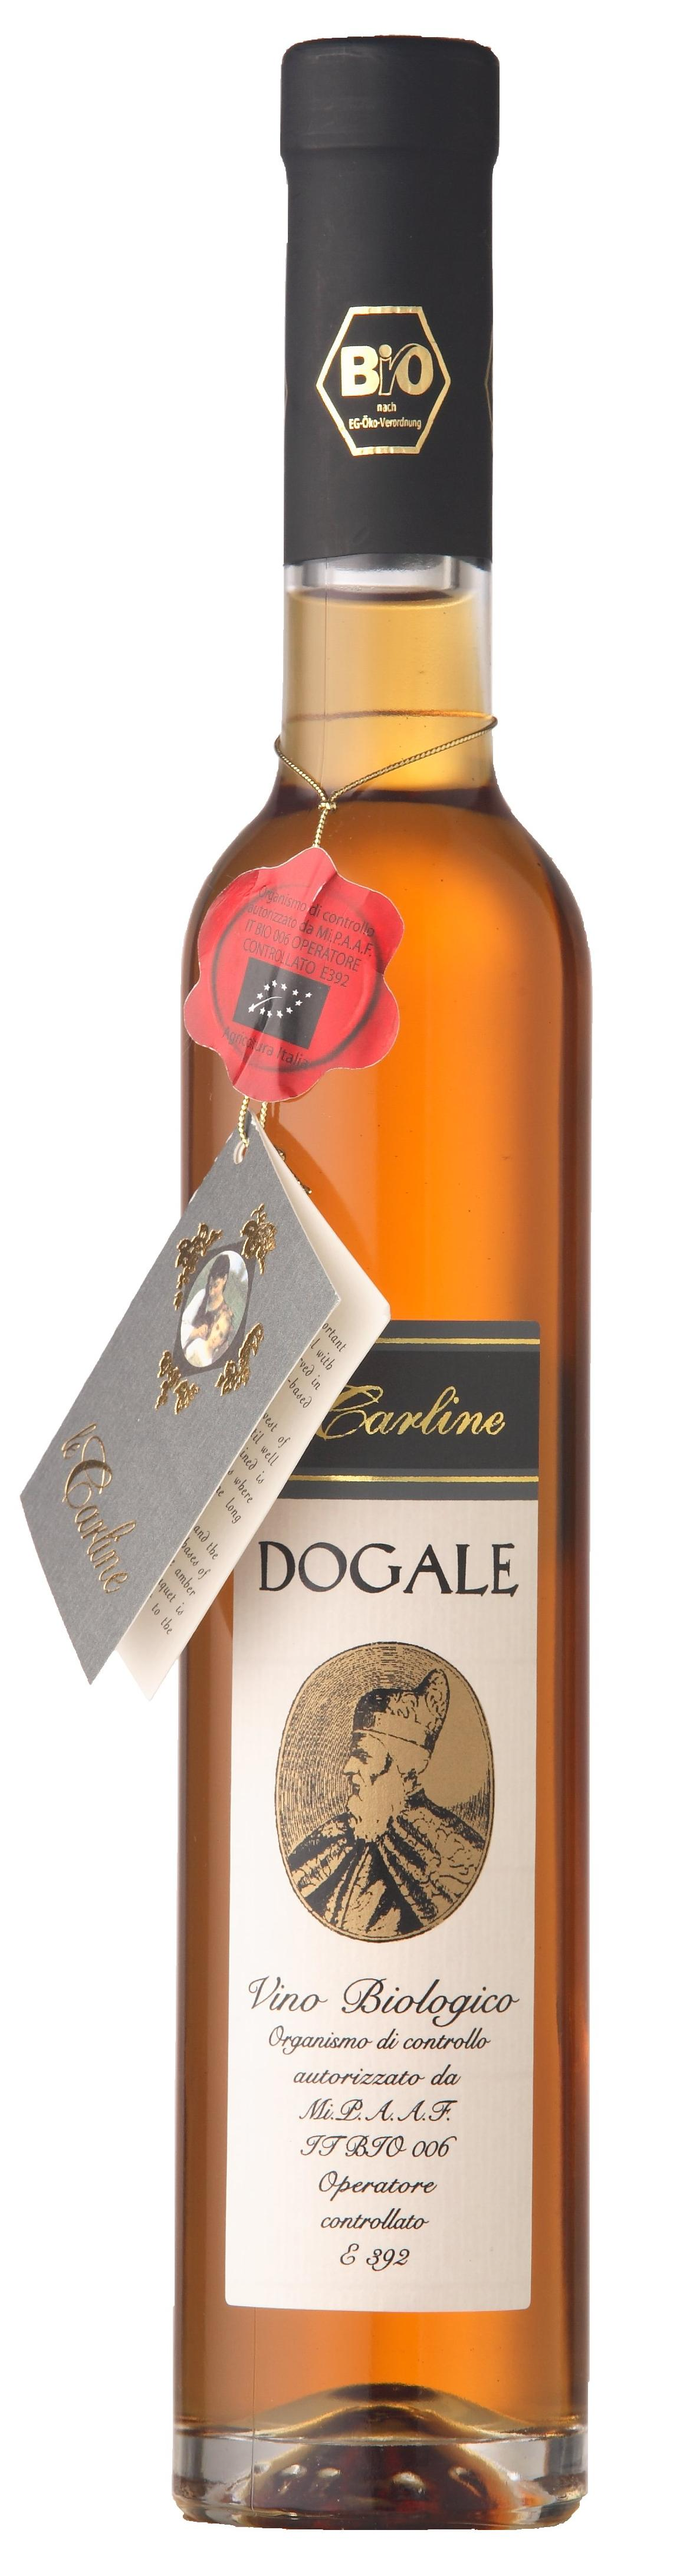 DOGALE 375